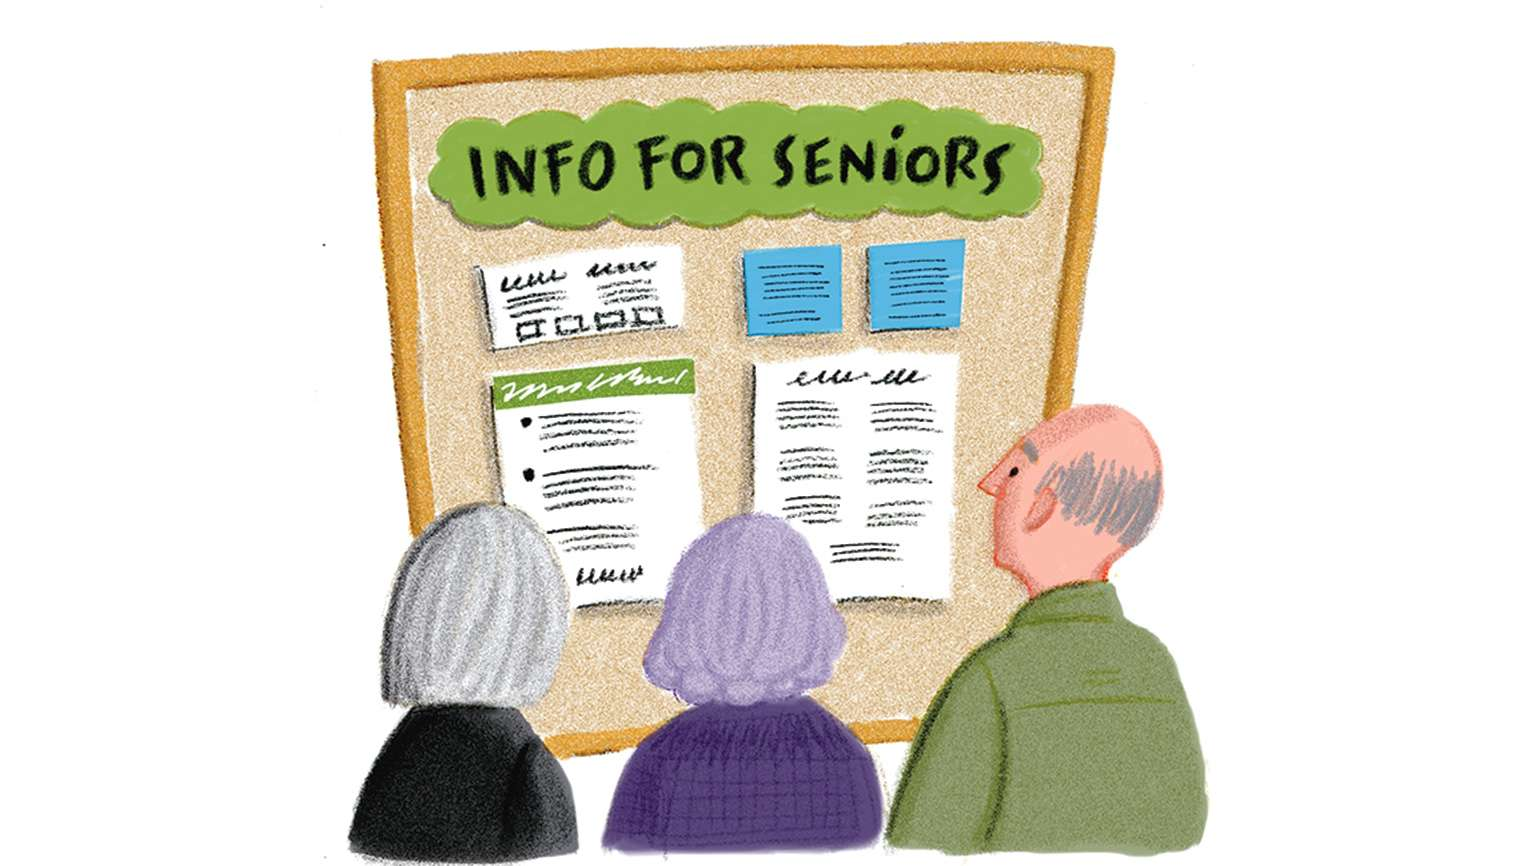 An artist's rendering of a trio of seniors perusing info on a bulletin board